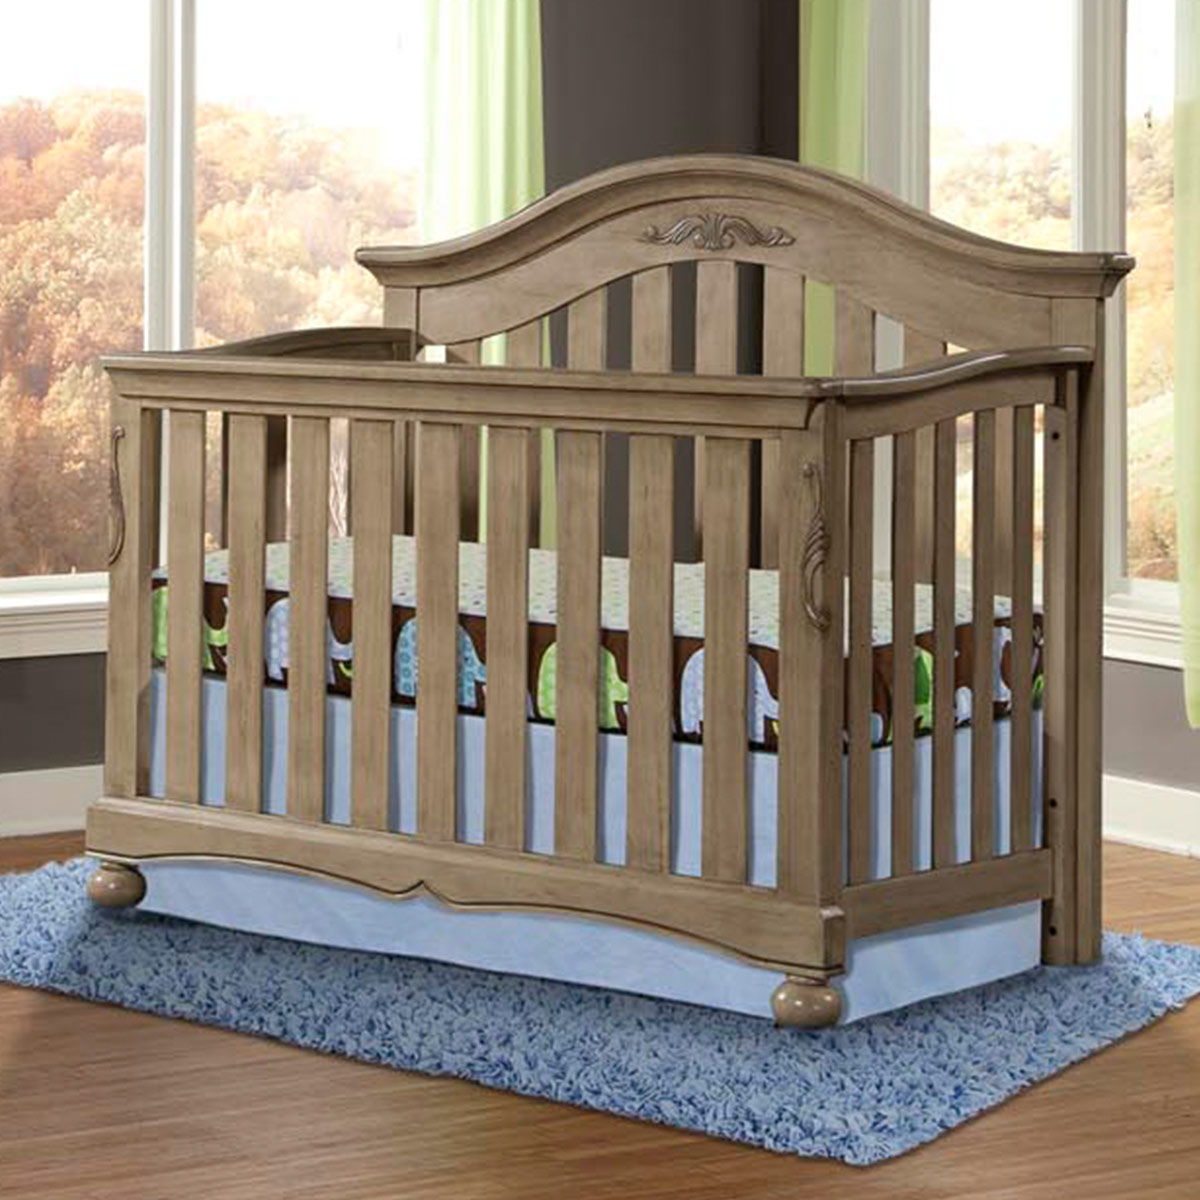 Westwood Design Meadowdale 4 In 1 Convertible Crib In Vintage FREE SHIPPING